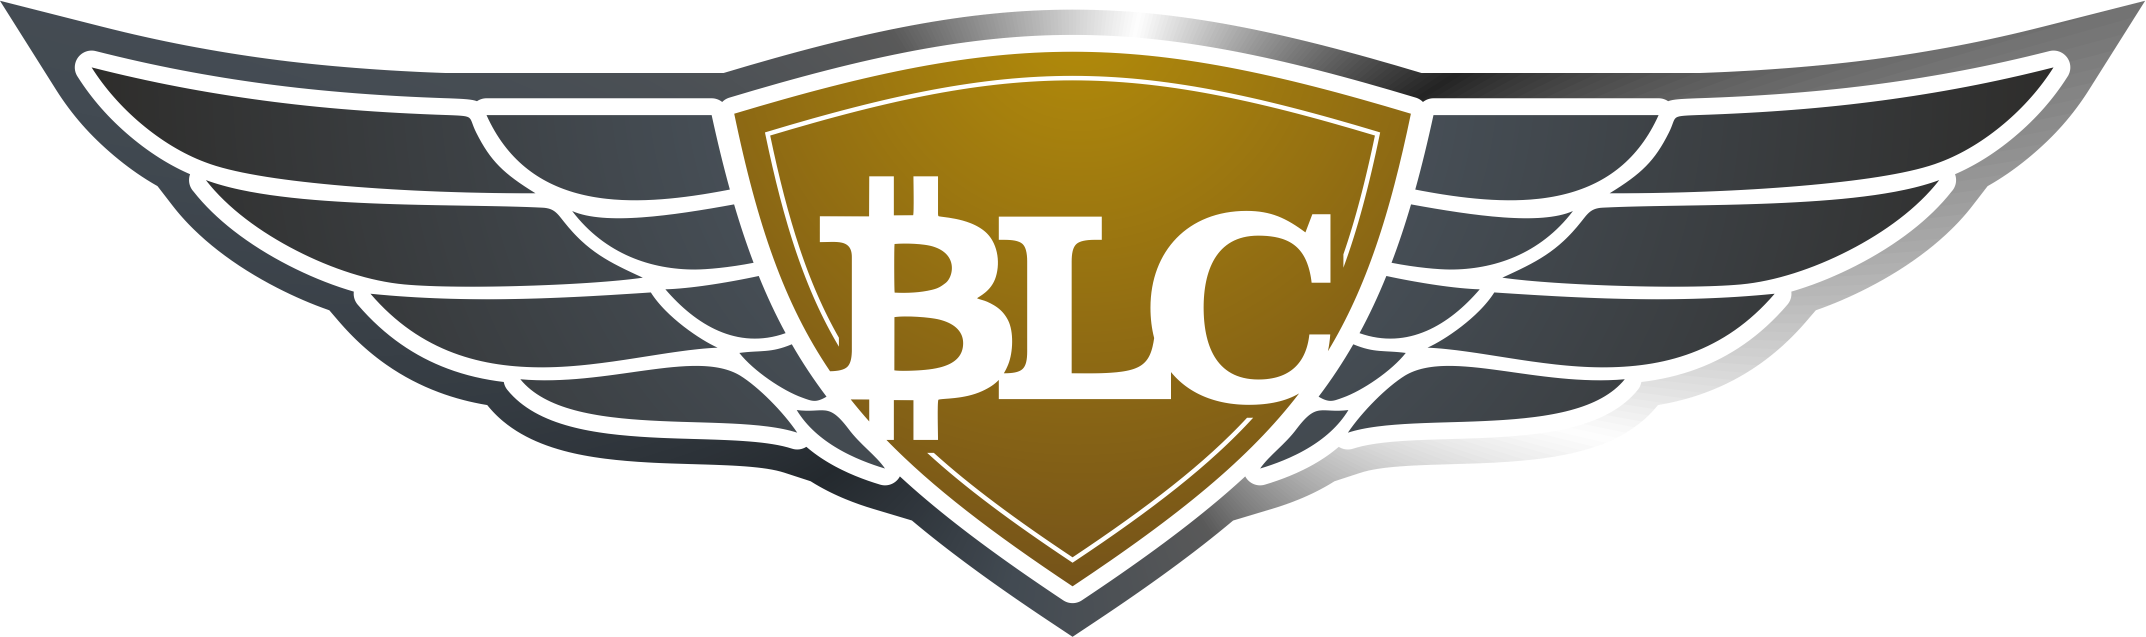 Welcome To Bitcoin Lifestyles Club! – Upgrade – BTC